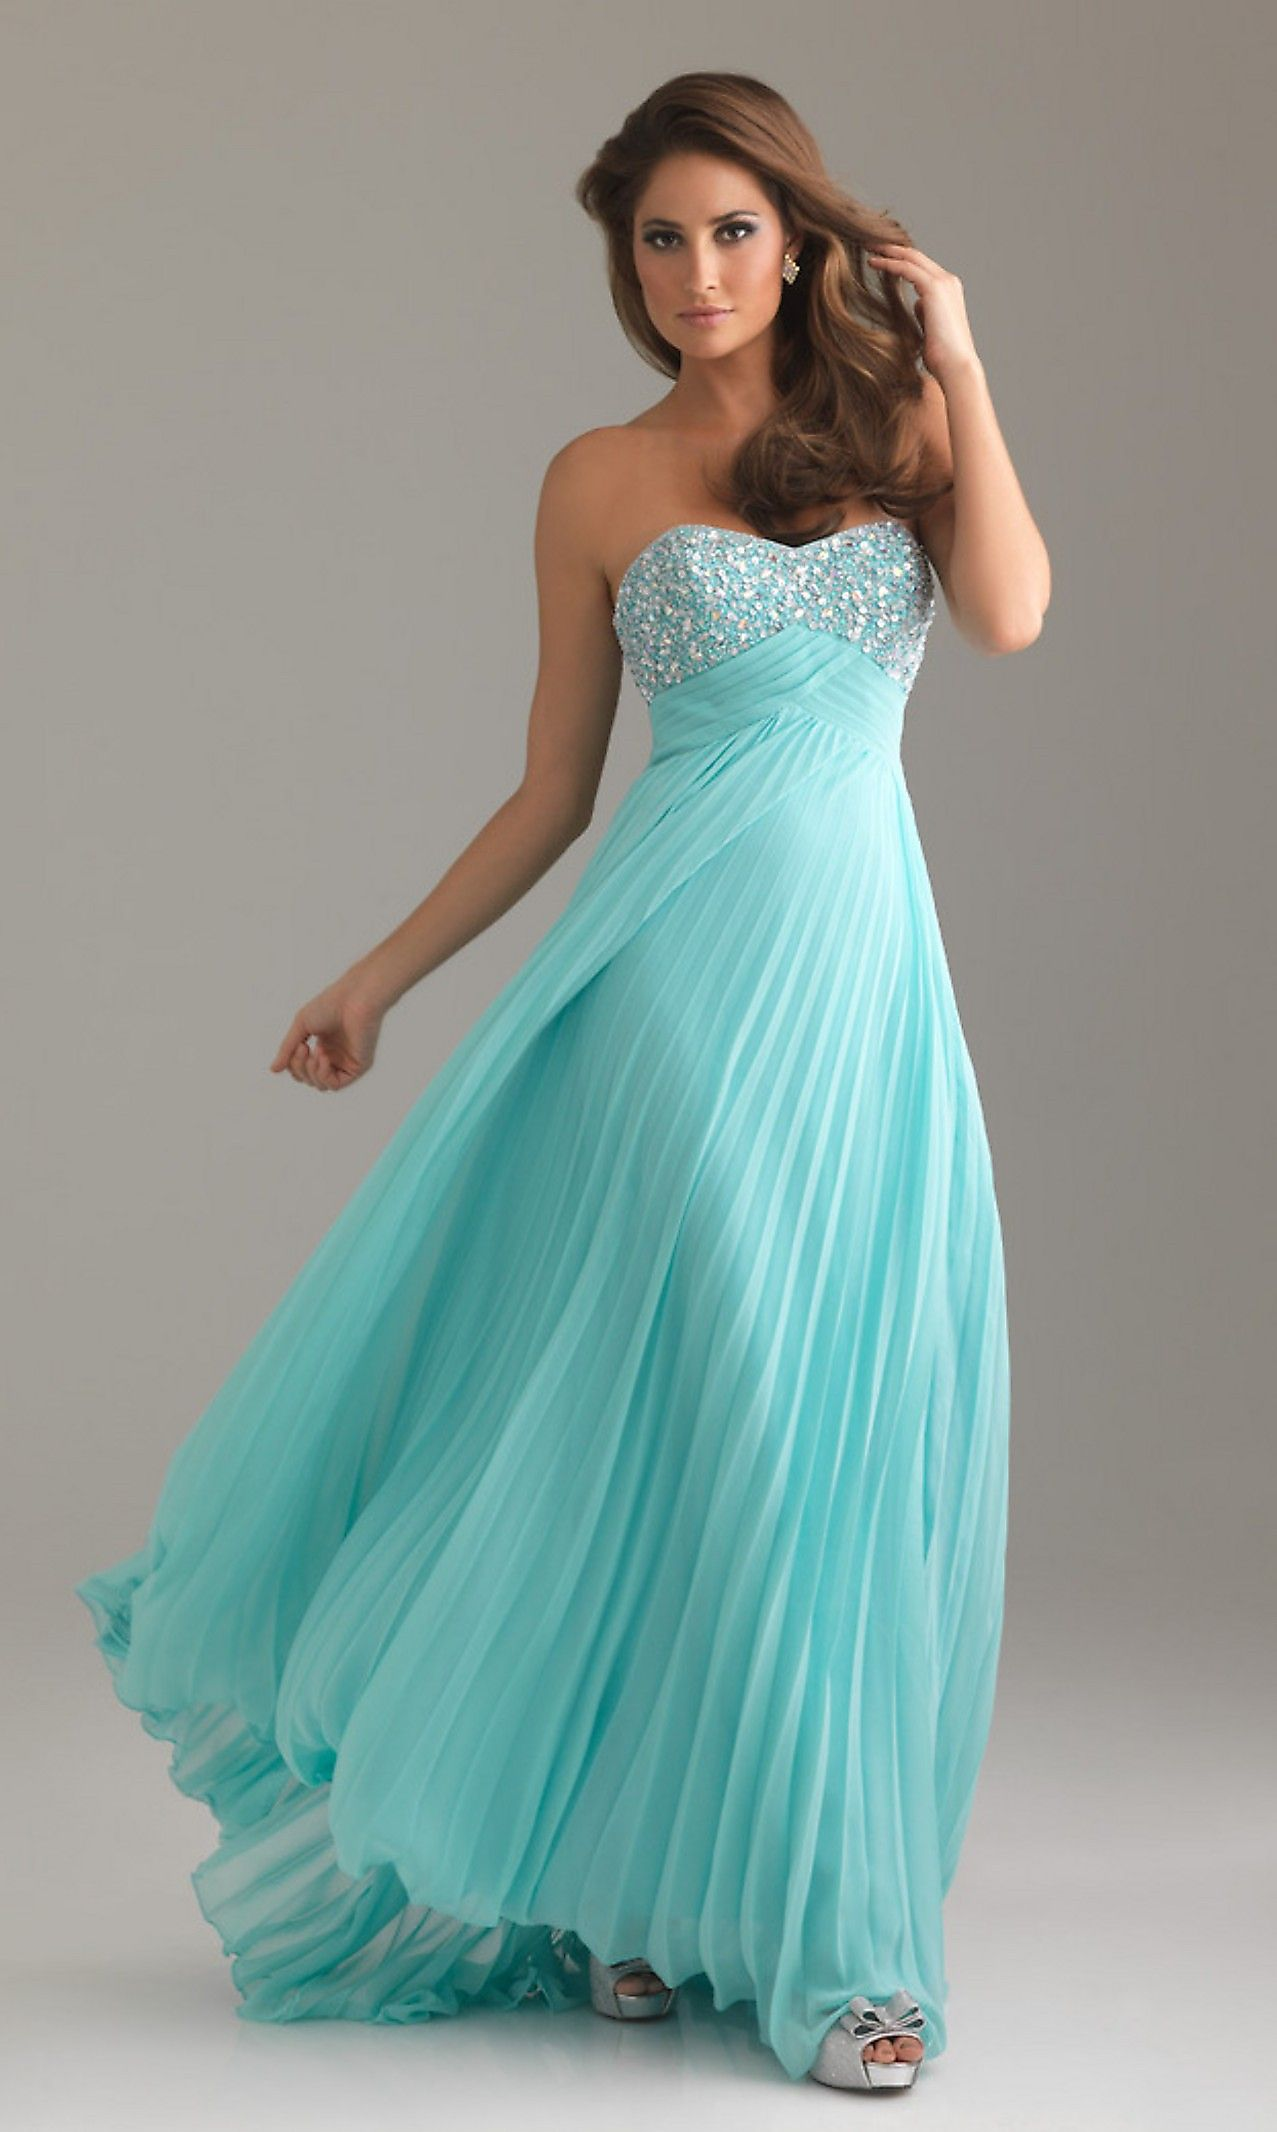 Strapless pleated prom dress fashion gowns u dresses pinterest